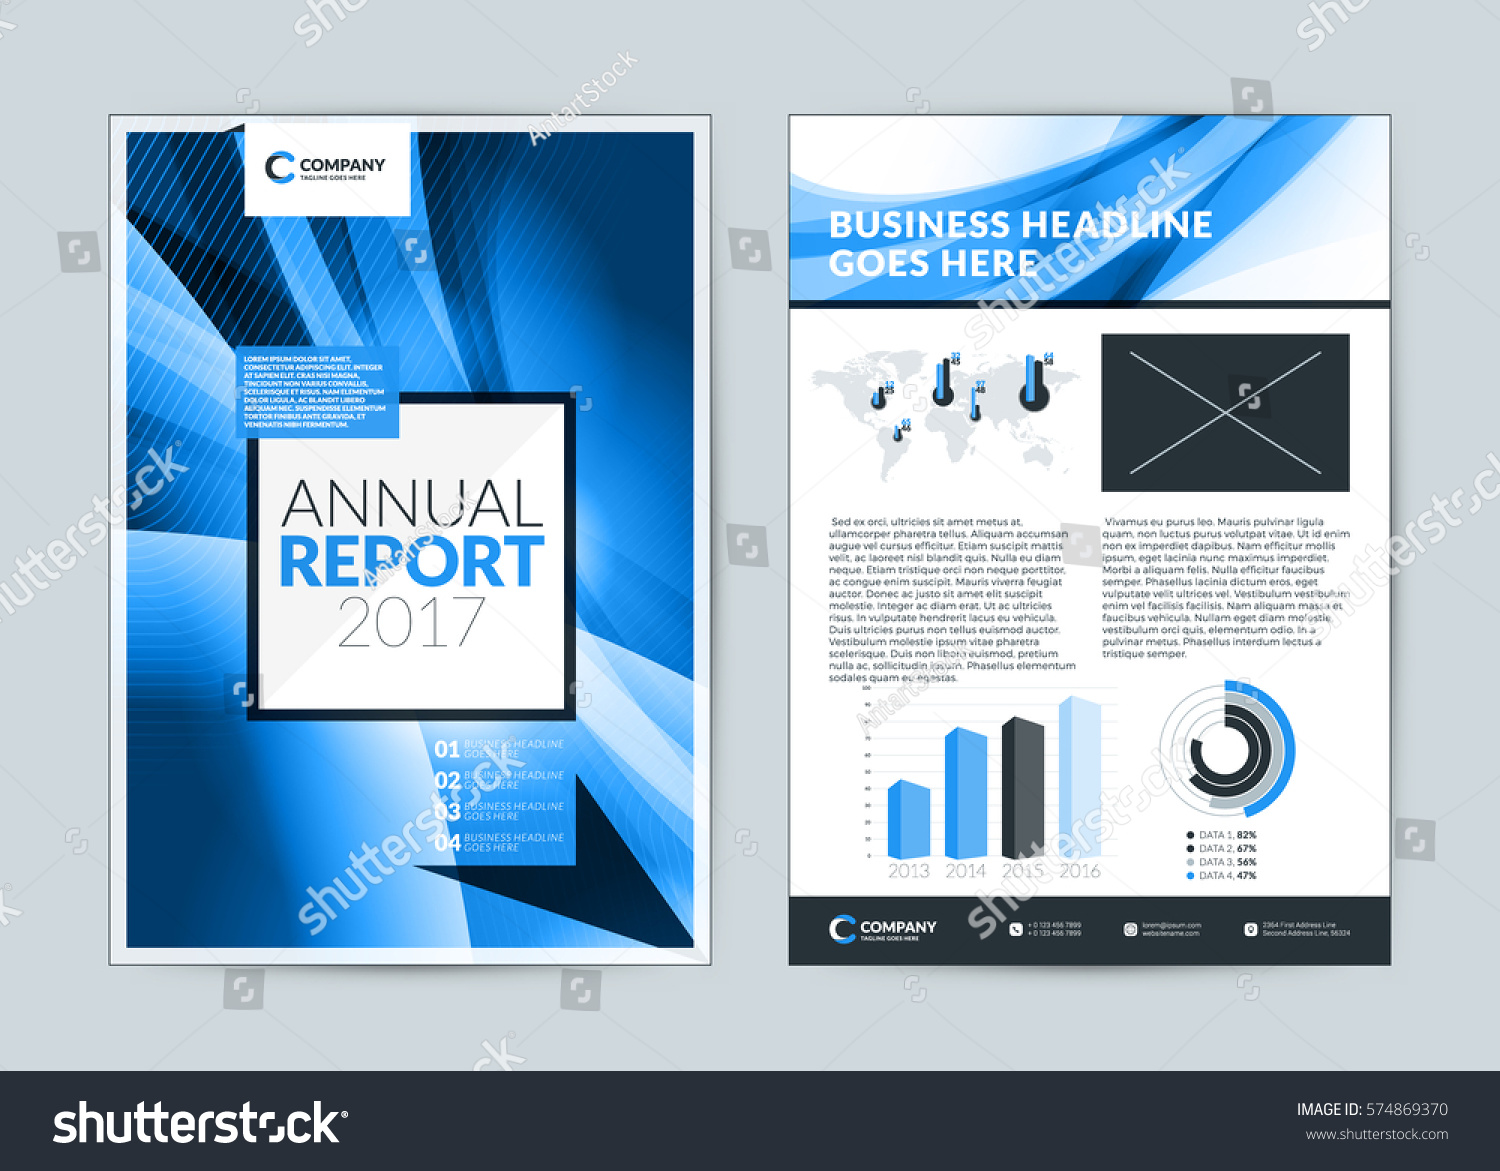 annual report cover design template vector stock vector 574869370